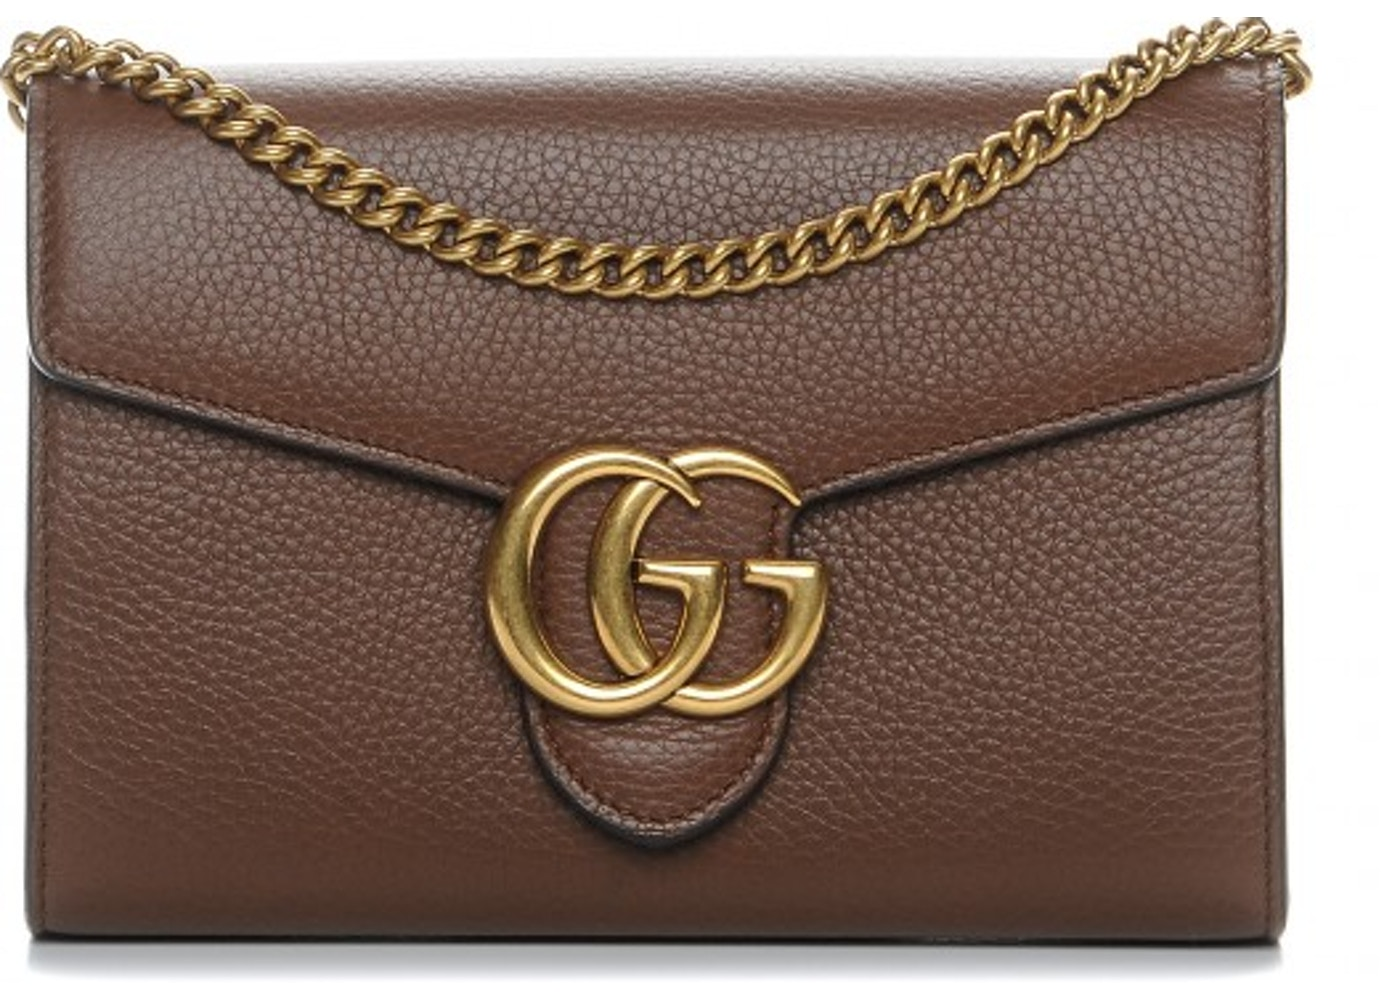 4d23c870b35 Gucci Chain Wallet Marmont GG Nut Brown. GG Nut Brown